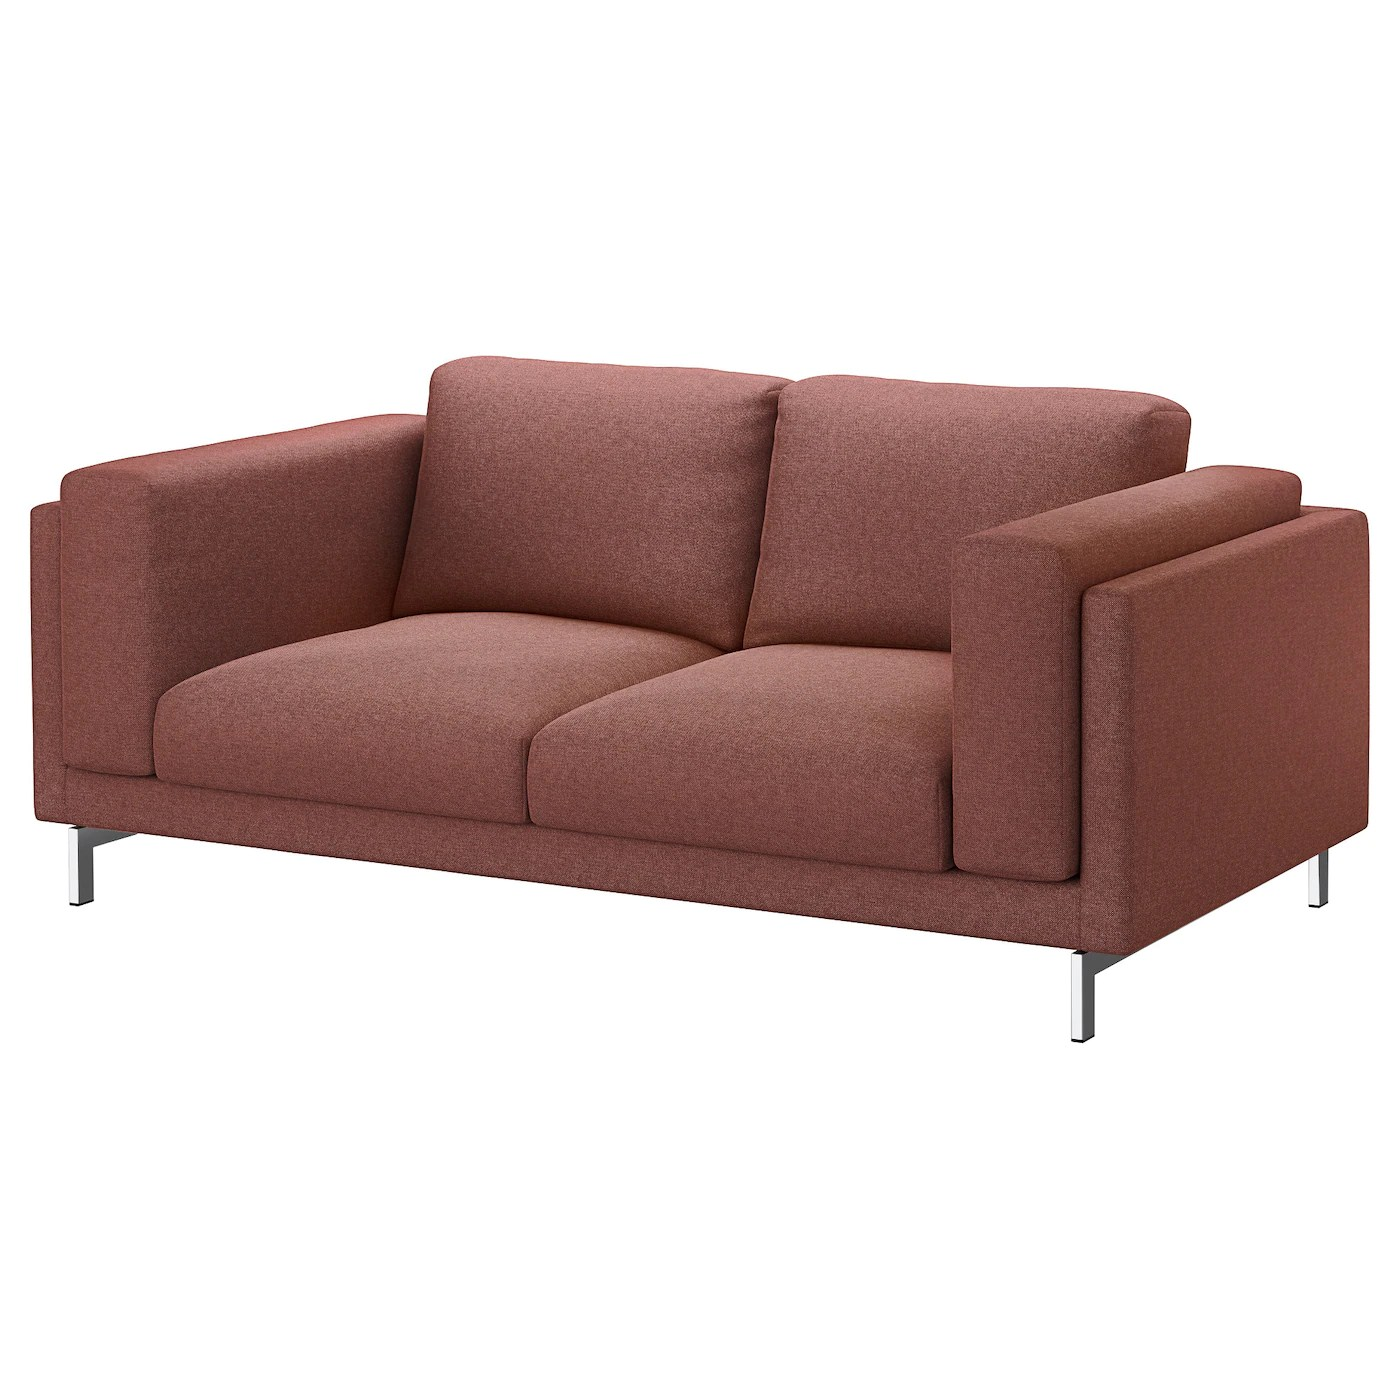 Ikea Nockeby Two Seat Sofa Nockeby Two Seat Sofa Tallmyra Rust Chrome Plated Ikea